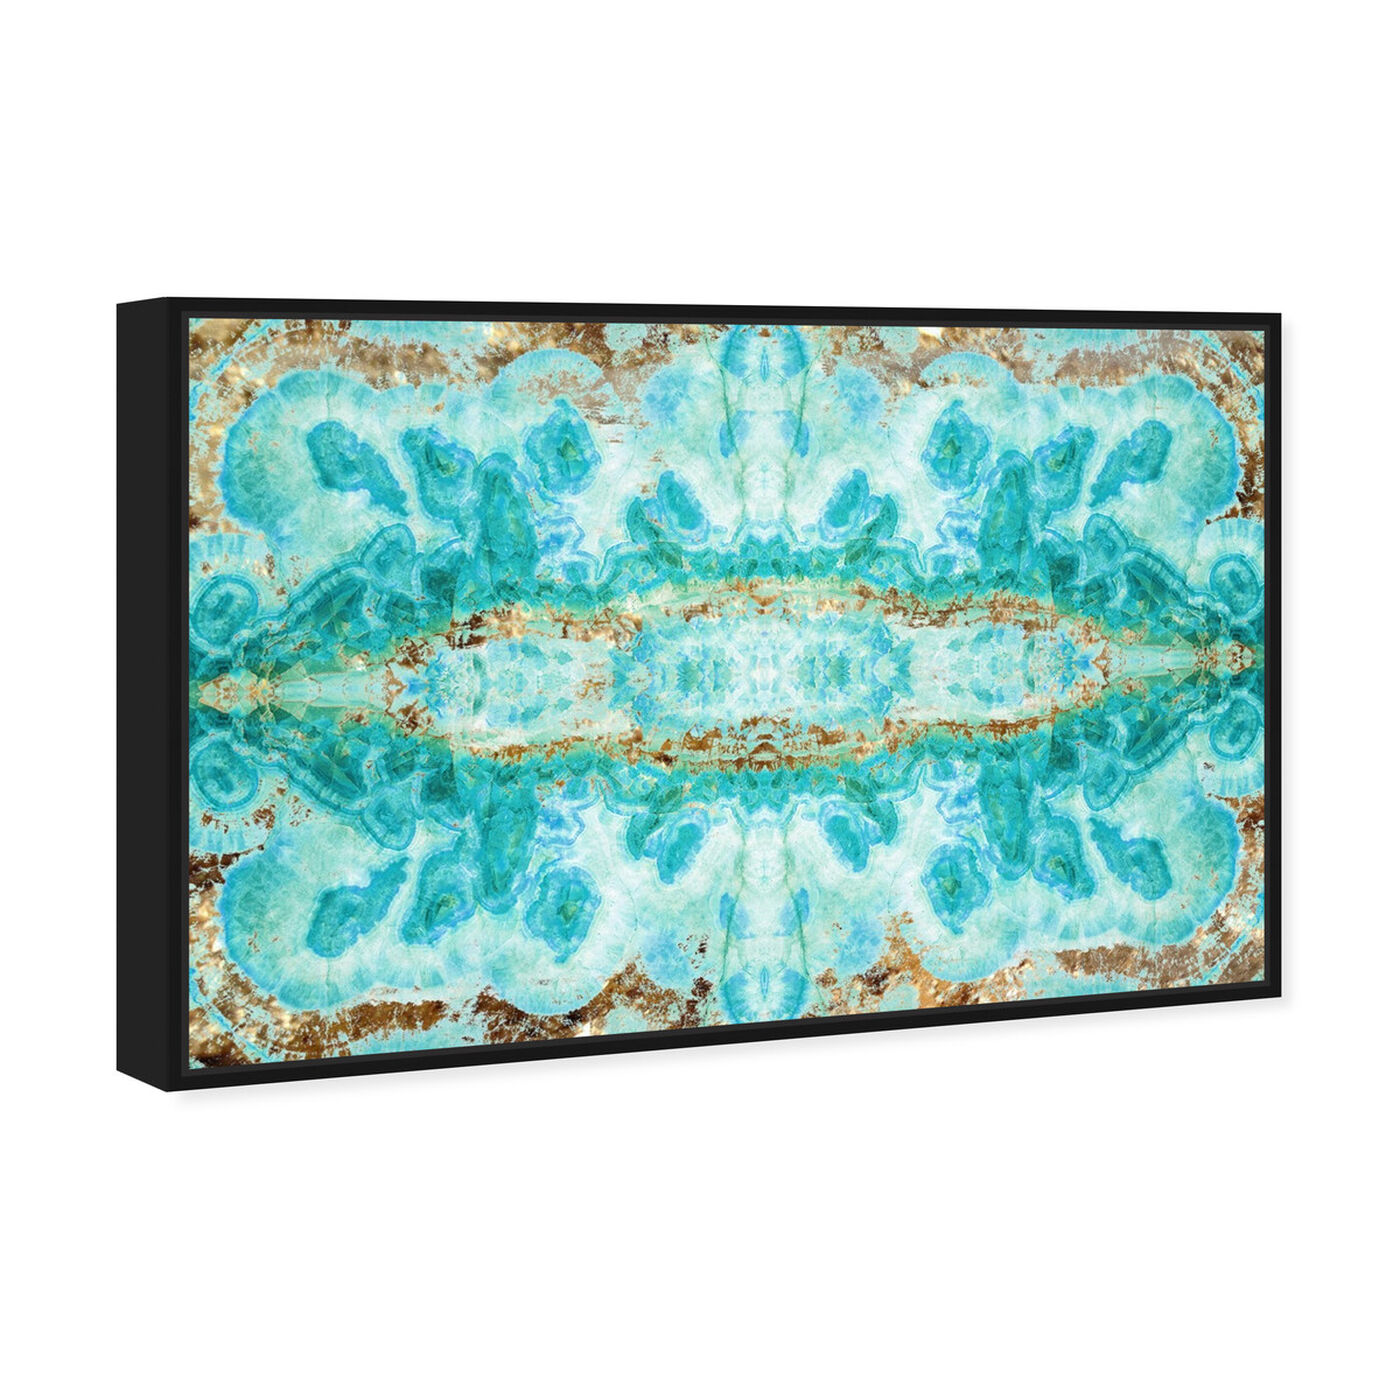 Angled view of Sumatra featuring abstract and crystals art.